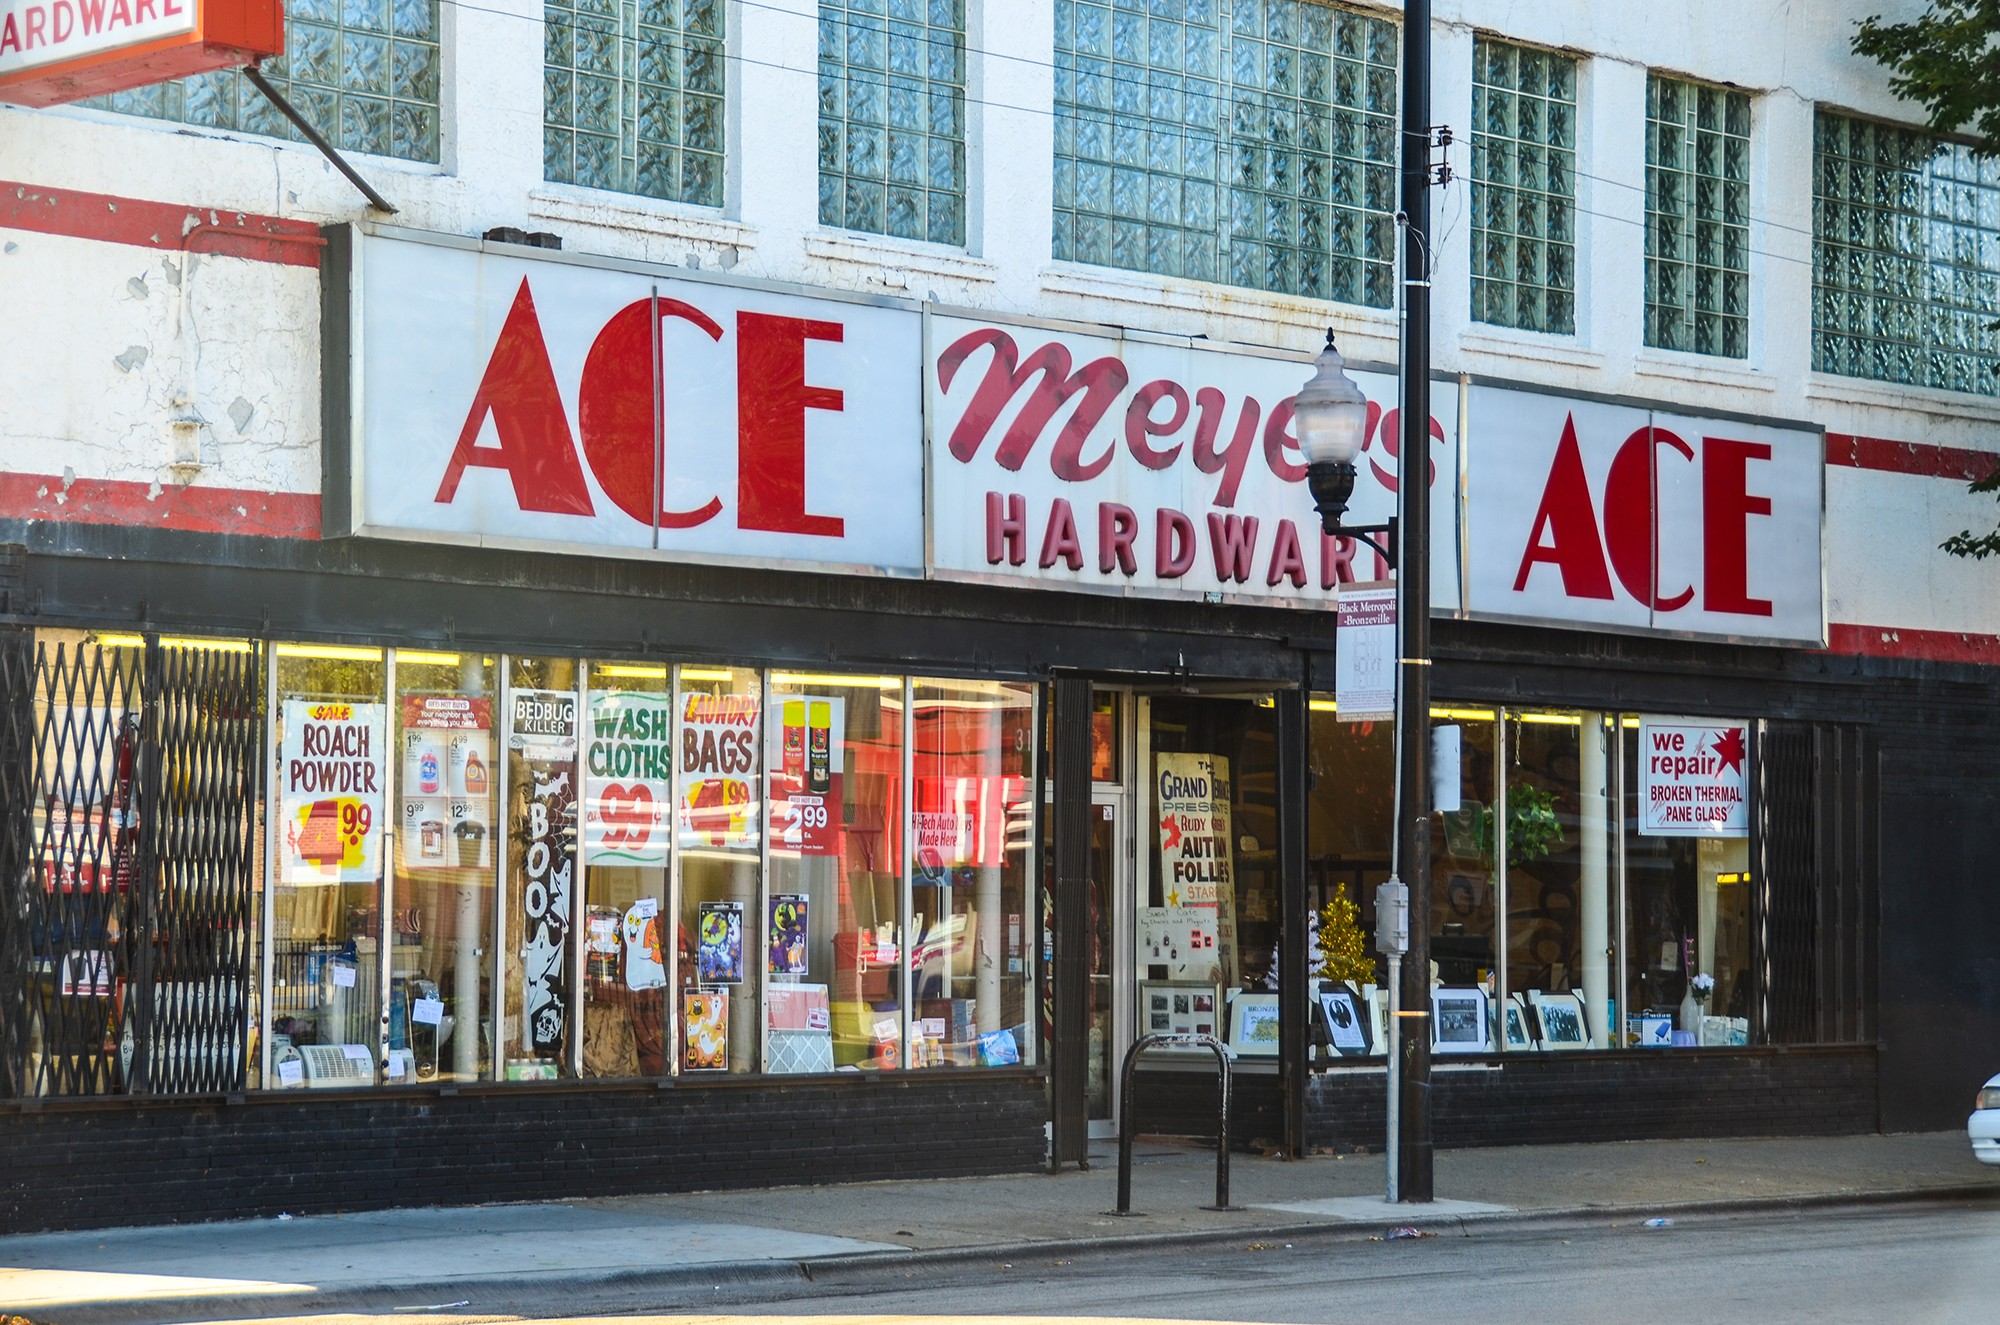 Lake Country Ace Hardware, Lake Country. likes · 19 talking about this · 83 were here. Lake Country Ace Hardware is locally owned and operated, Lake Country Ace Hardware /5(12).